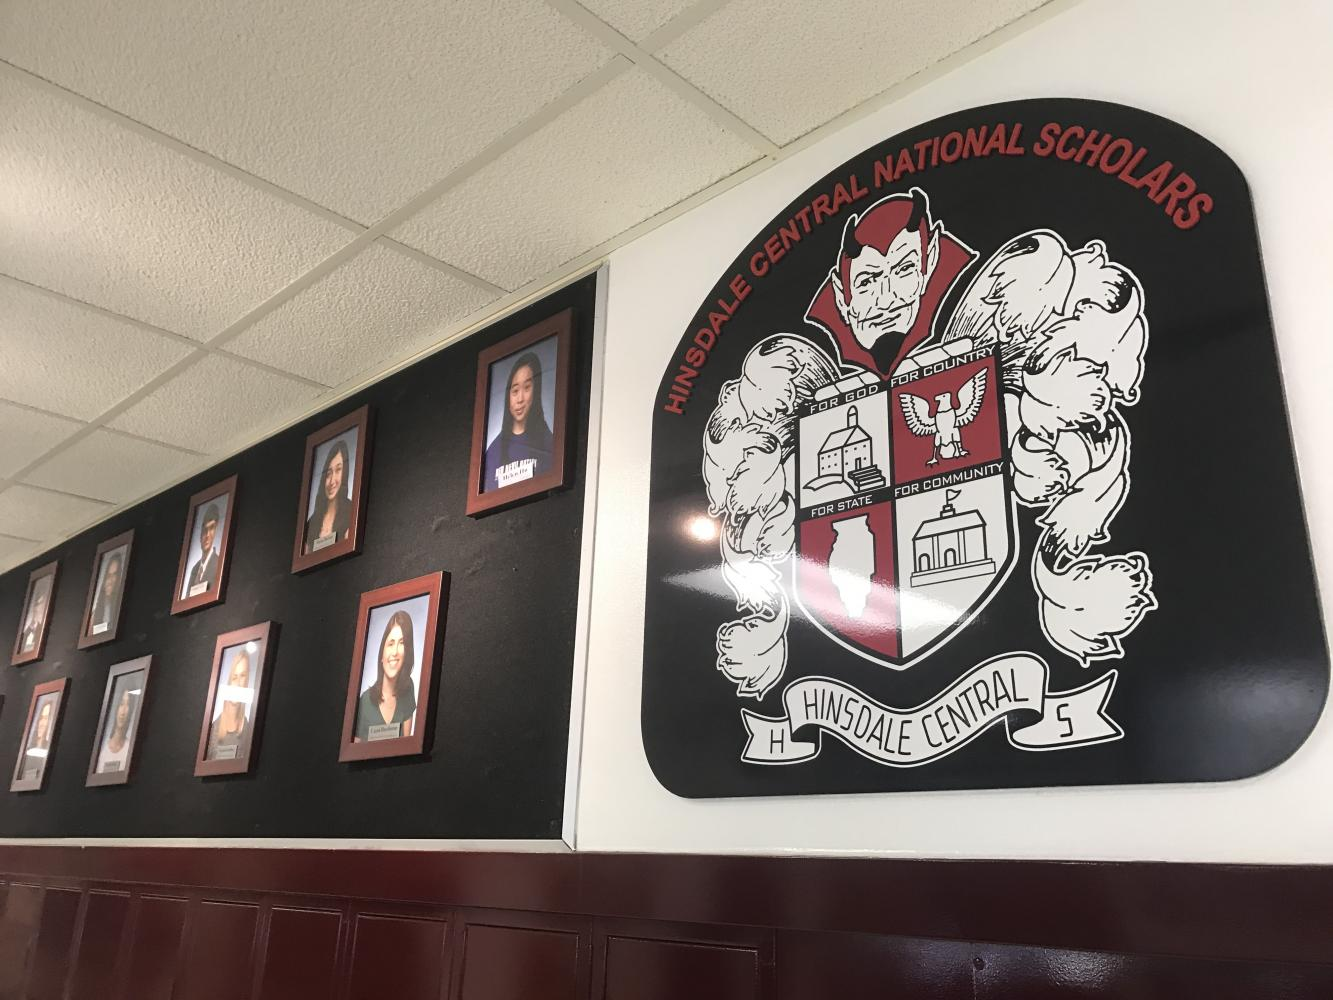 The National Merit semifinalists are displayed on the wall outside the main office. Currently the wall still shows the semifinalists from the class of 2017, but the class of 2018 will be added soon.